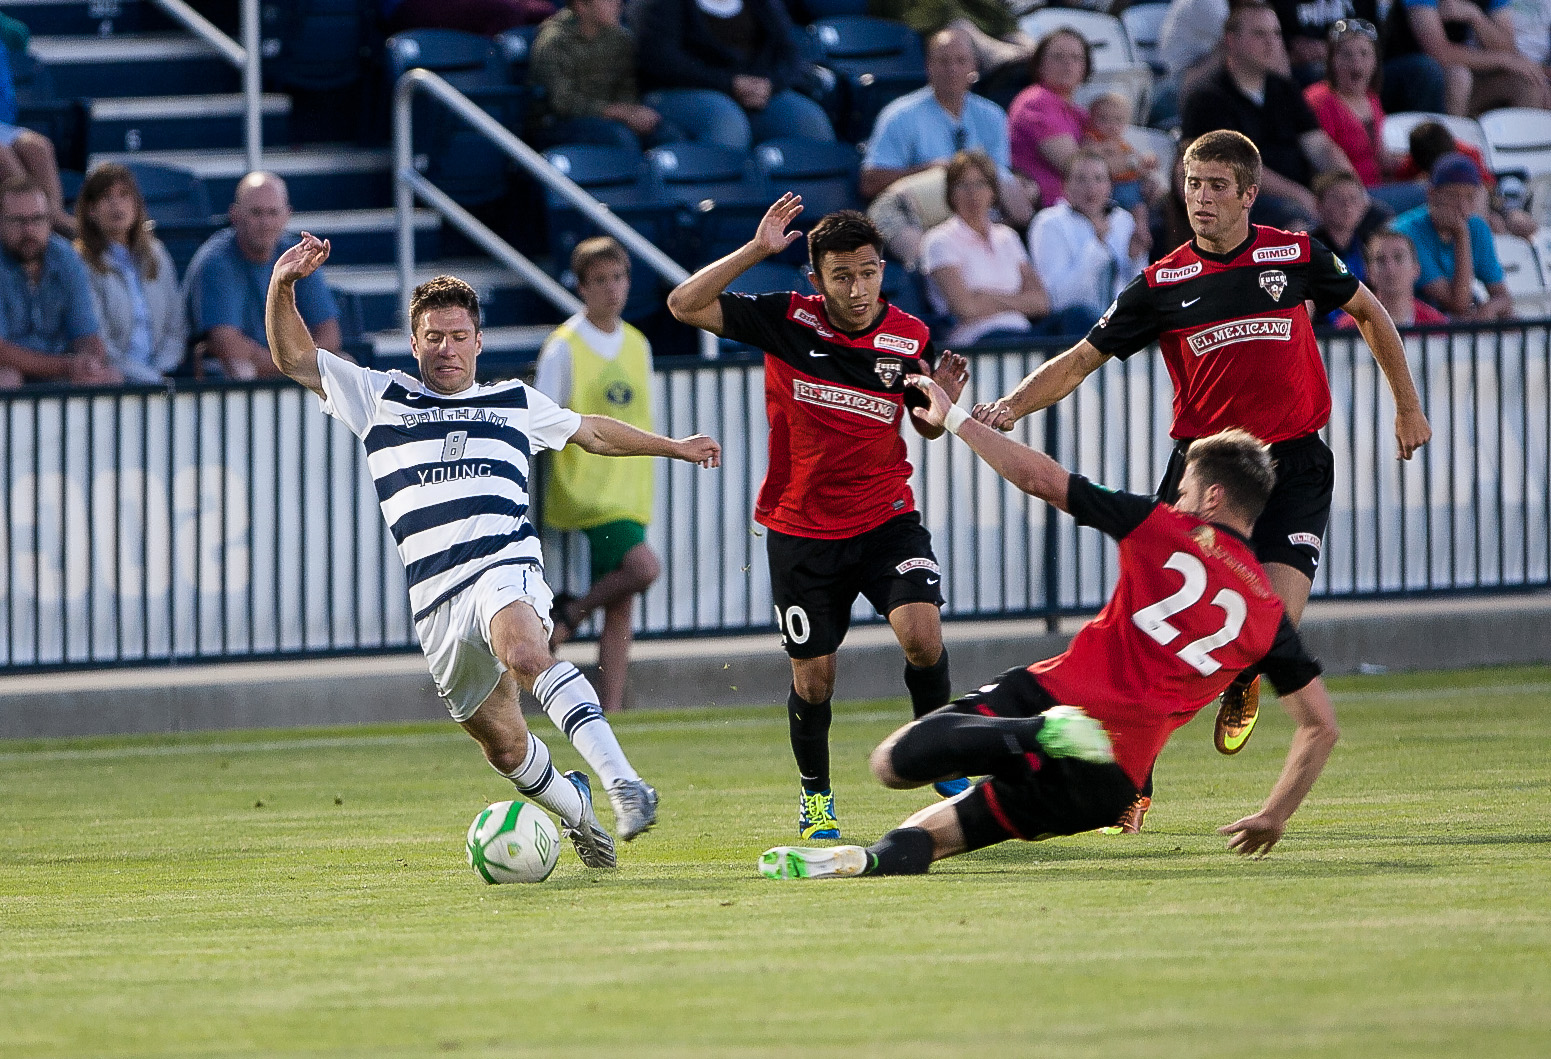 BYU forward Jonathon Junca fights for the ball against a defender during a match against the Fresno Fuego